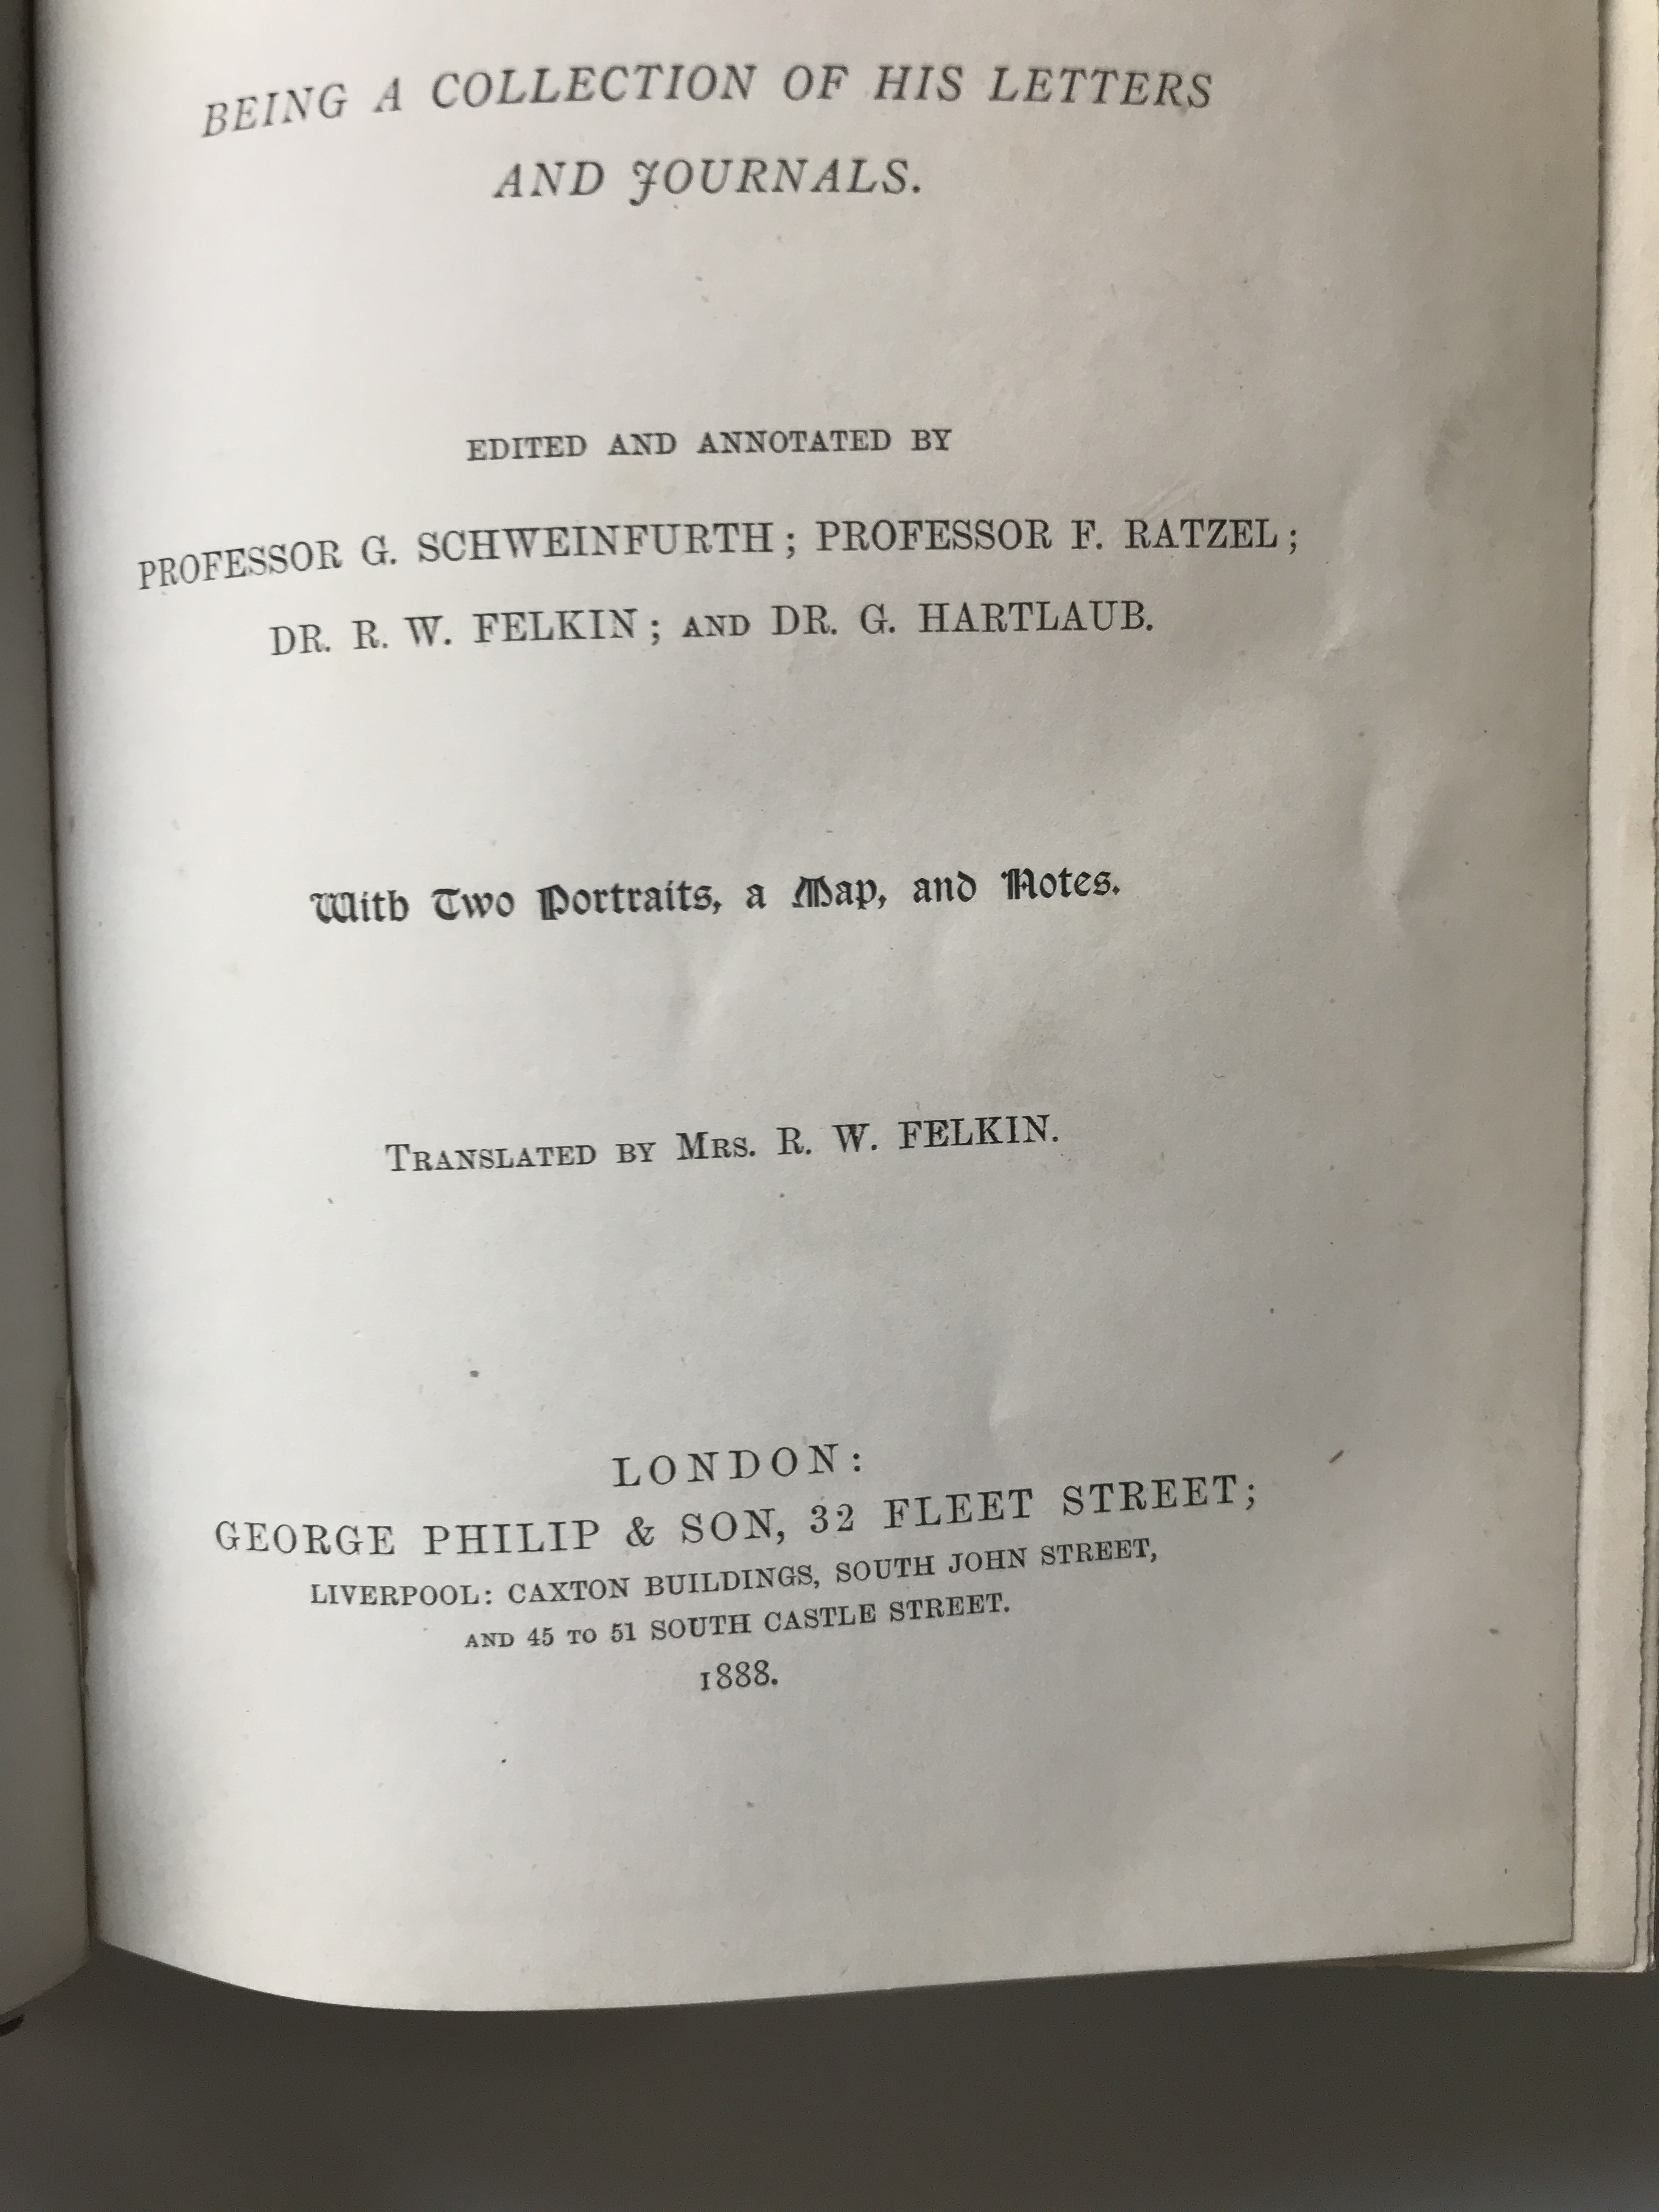 Image for EMIN PASHA IN CENTRAL AFRICA , being a collection of his letters and journals. Edited and annotated by Professor G. Schweinfurth, Professor F. Ratzel, Dr. R.W. Felkin, and Dr. G. Hartlaub